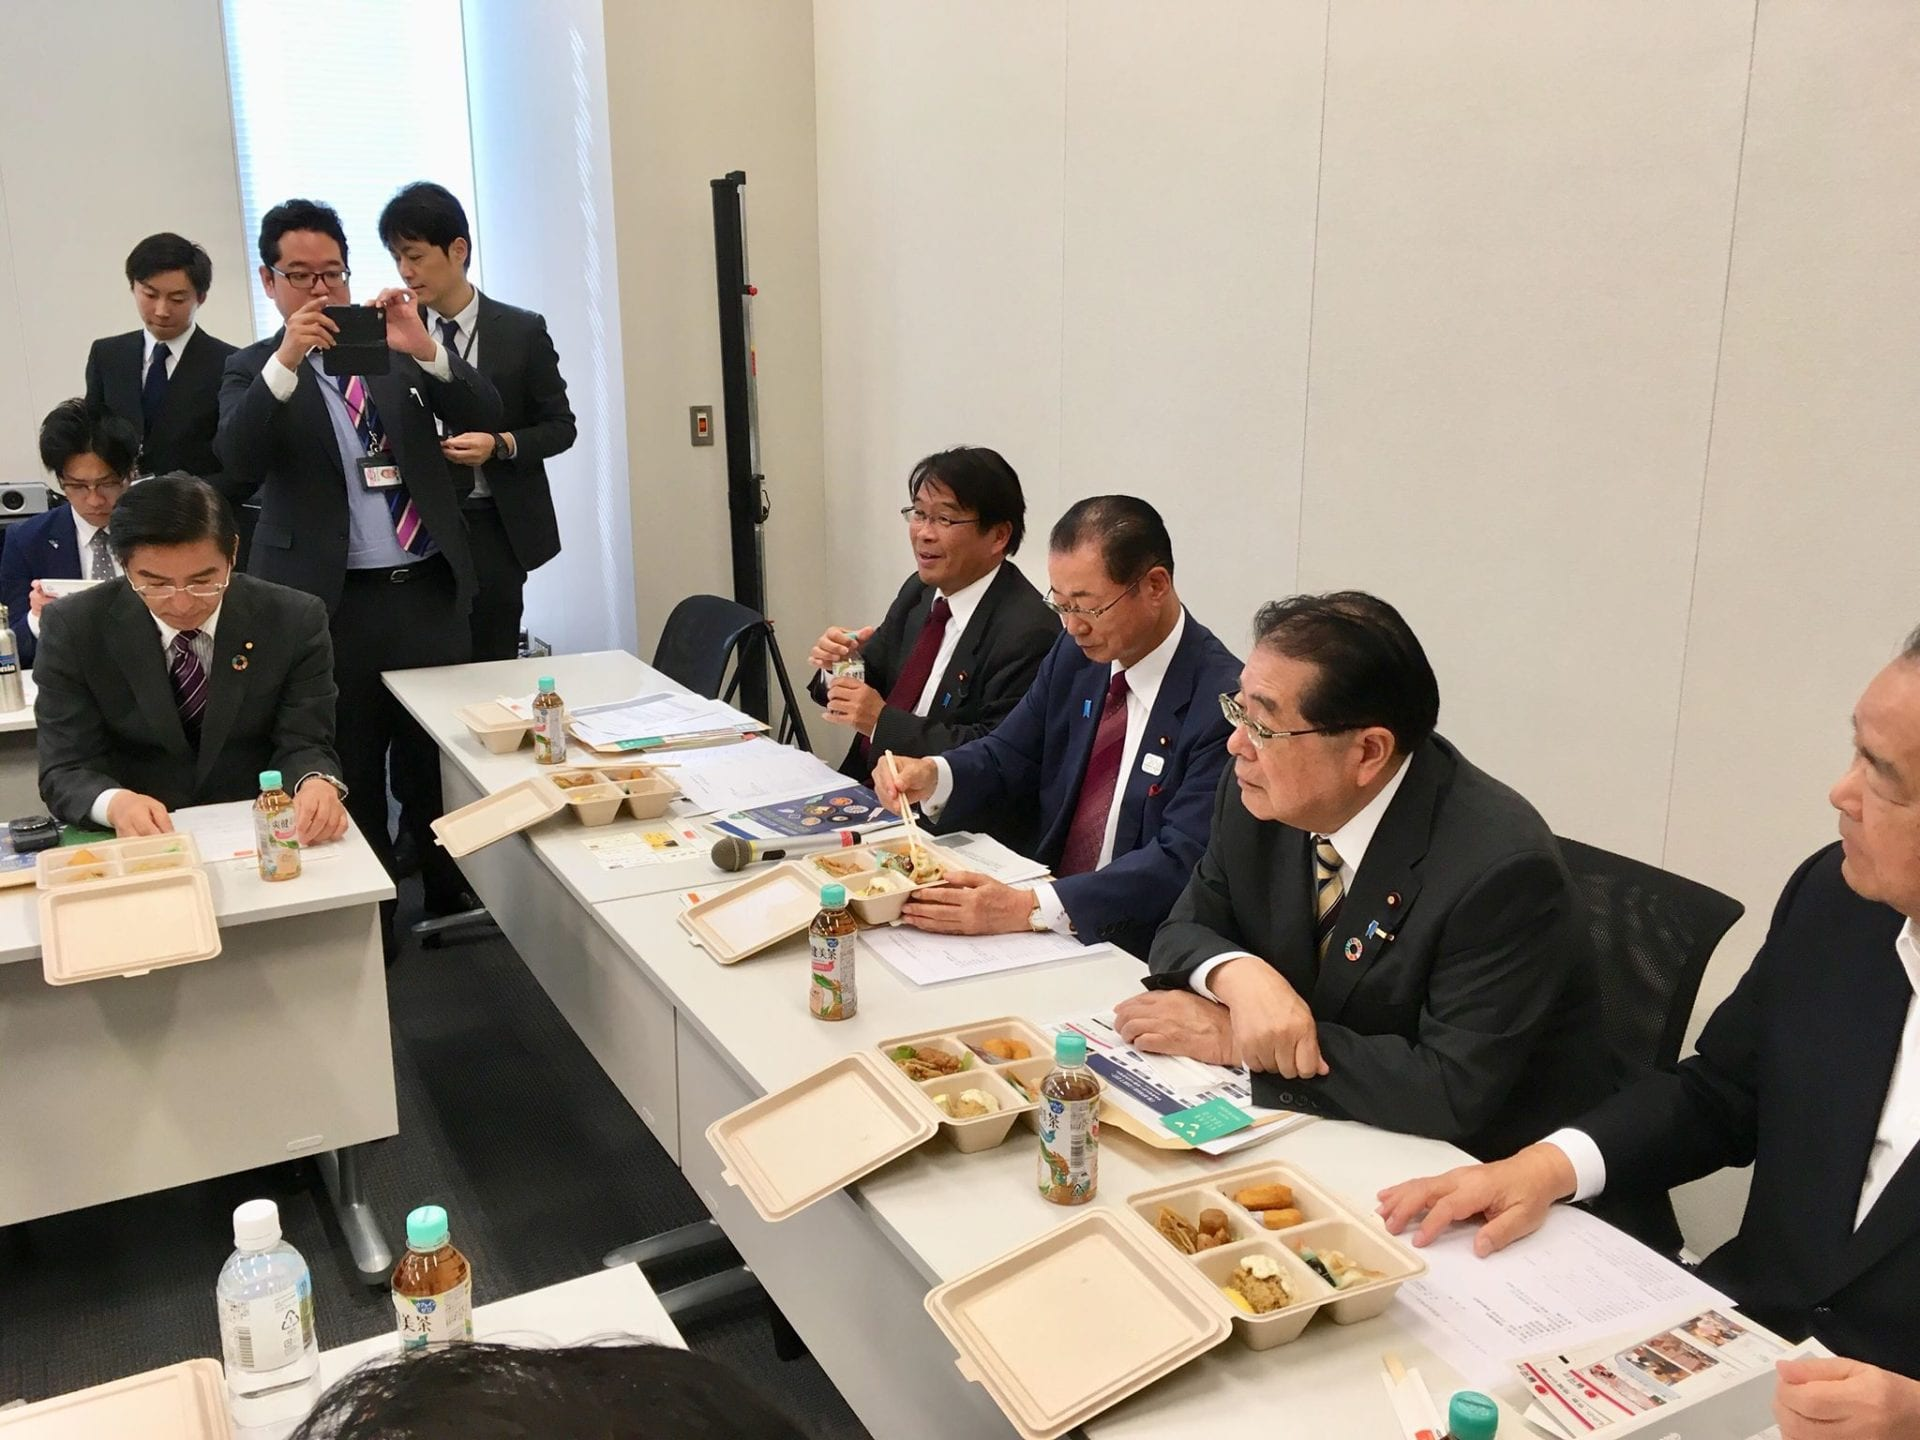 MPs arranging a meat free bonanza at Tokyo Olympics - Feature Image